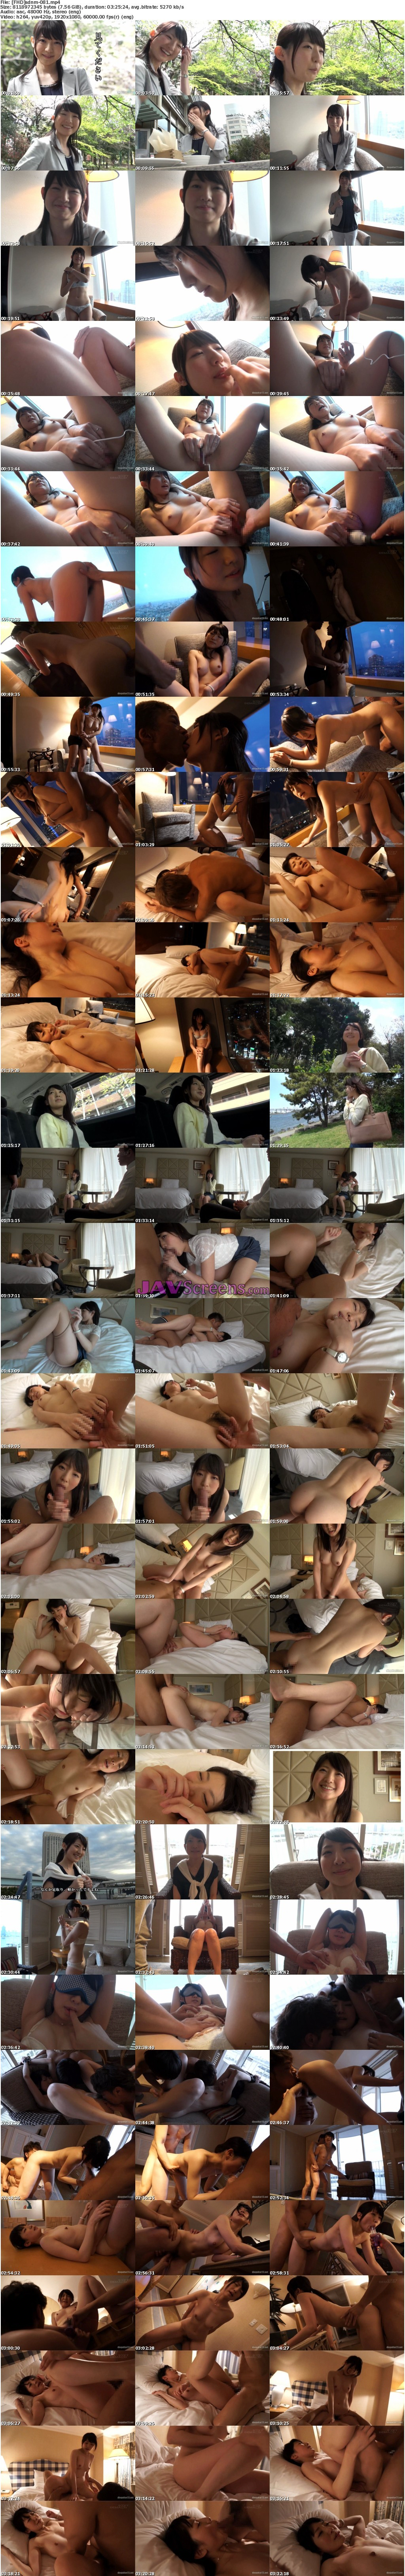 SDNM-081.jpg - JAV Screenshot